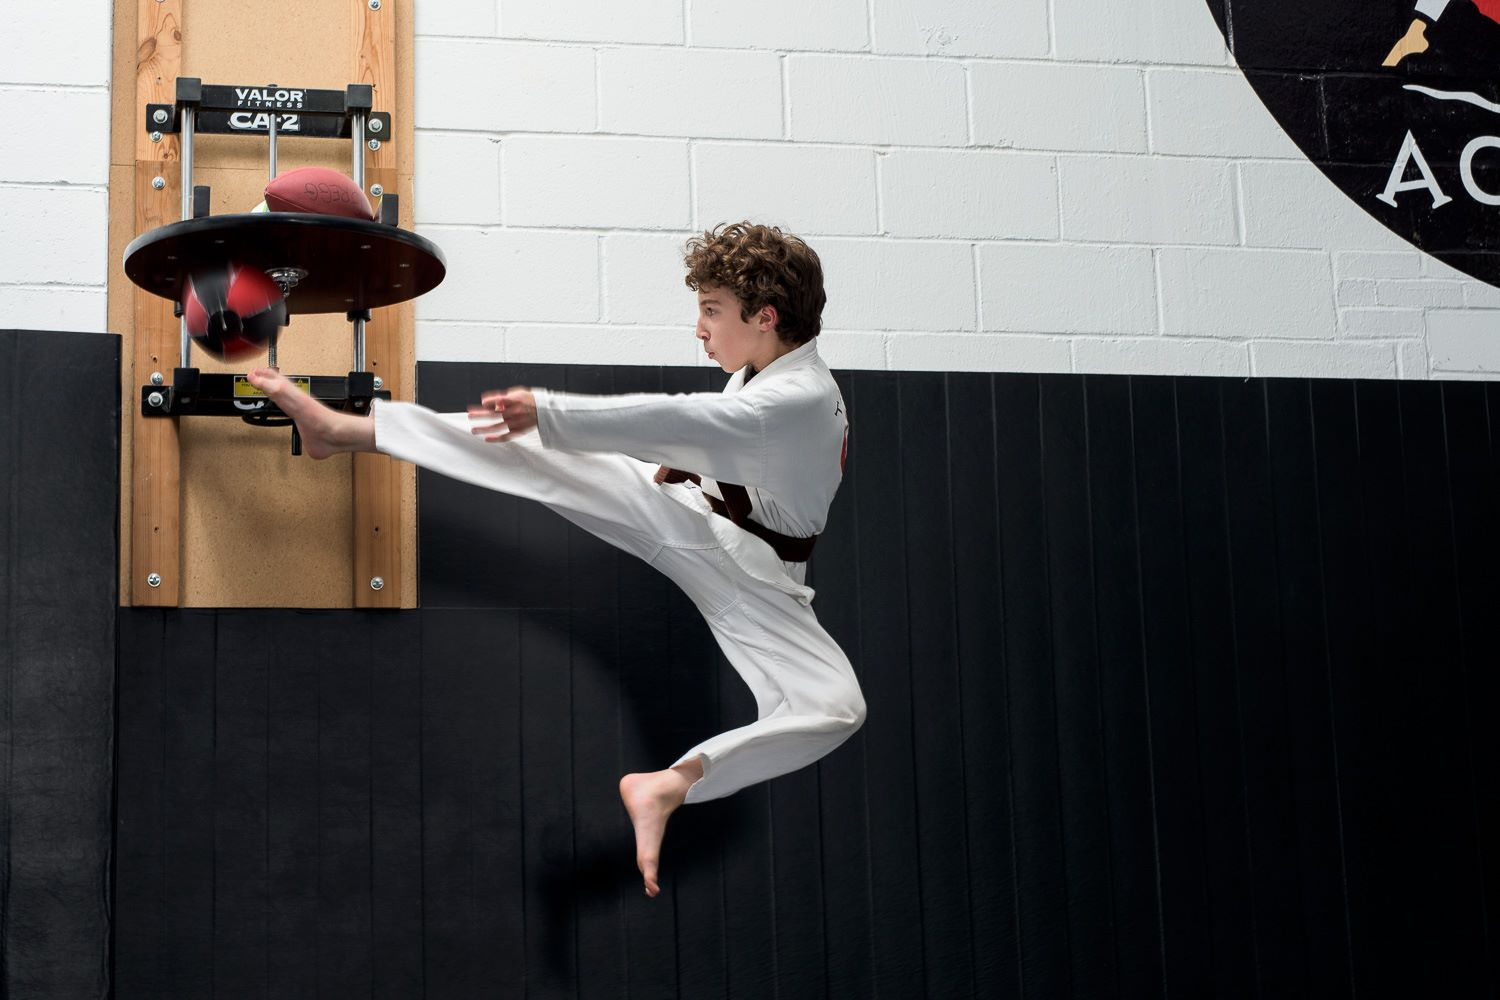 Youth Competitive Martial Arts